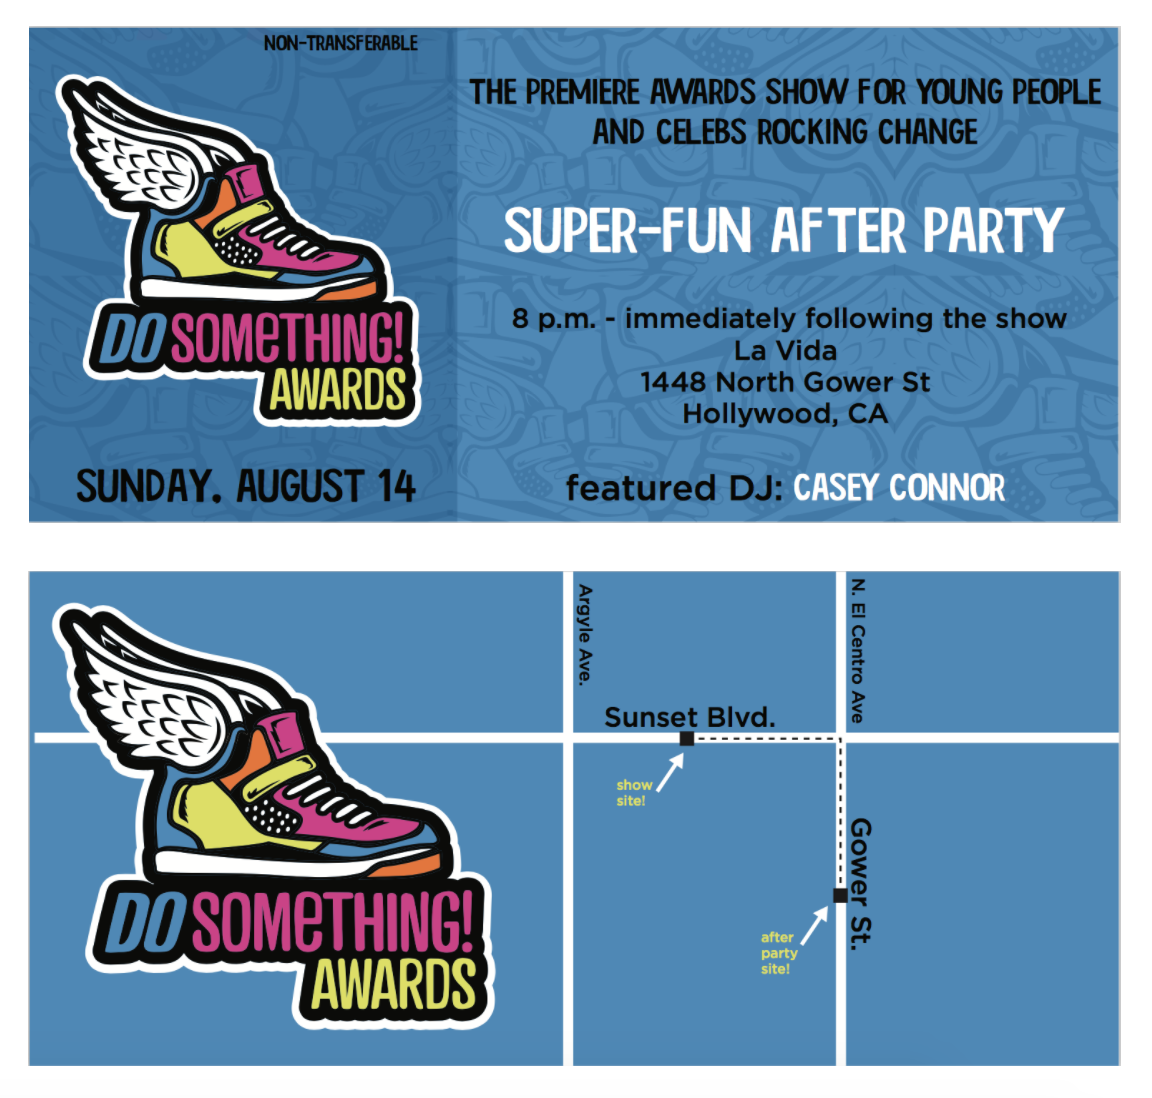 Ticket (front and back) for the VH1 Do Something Awards after party.